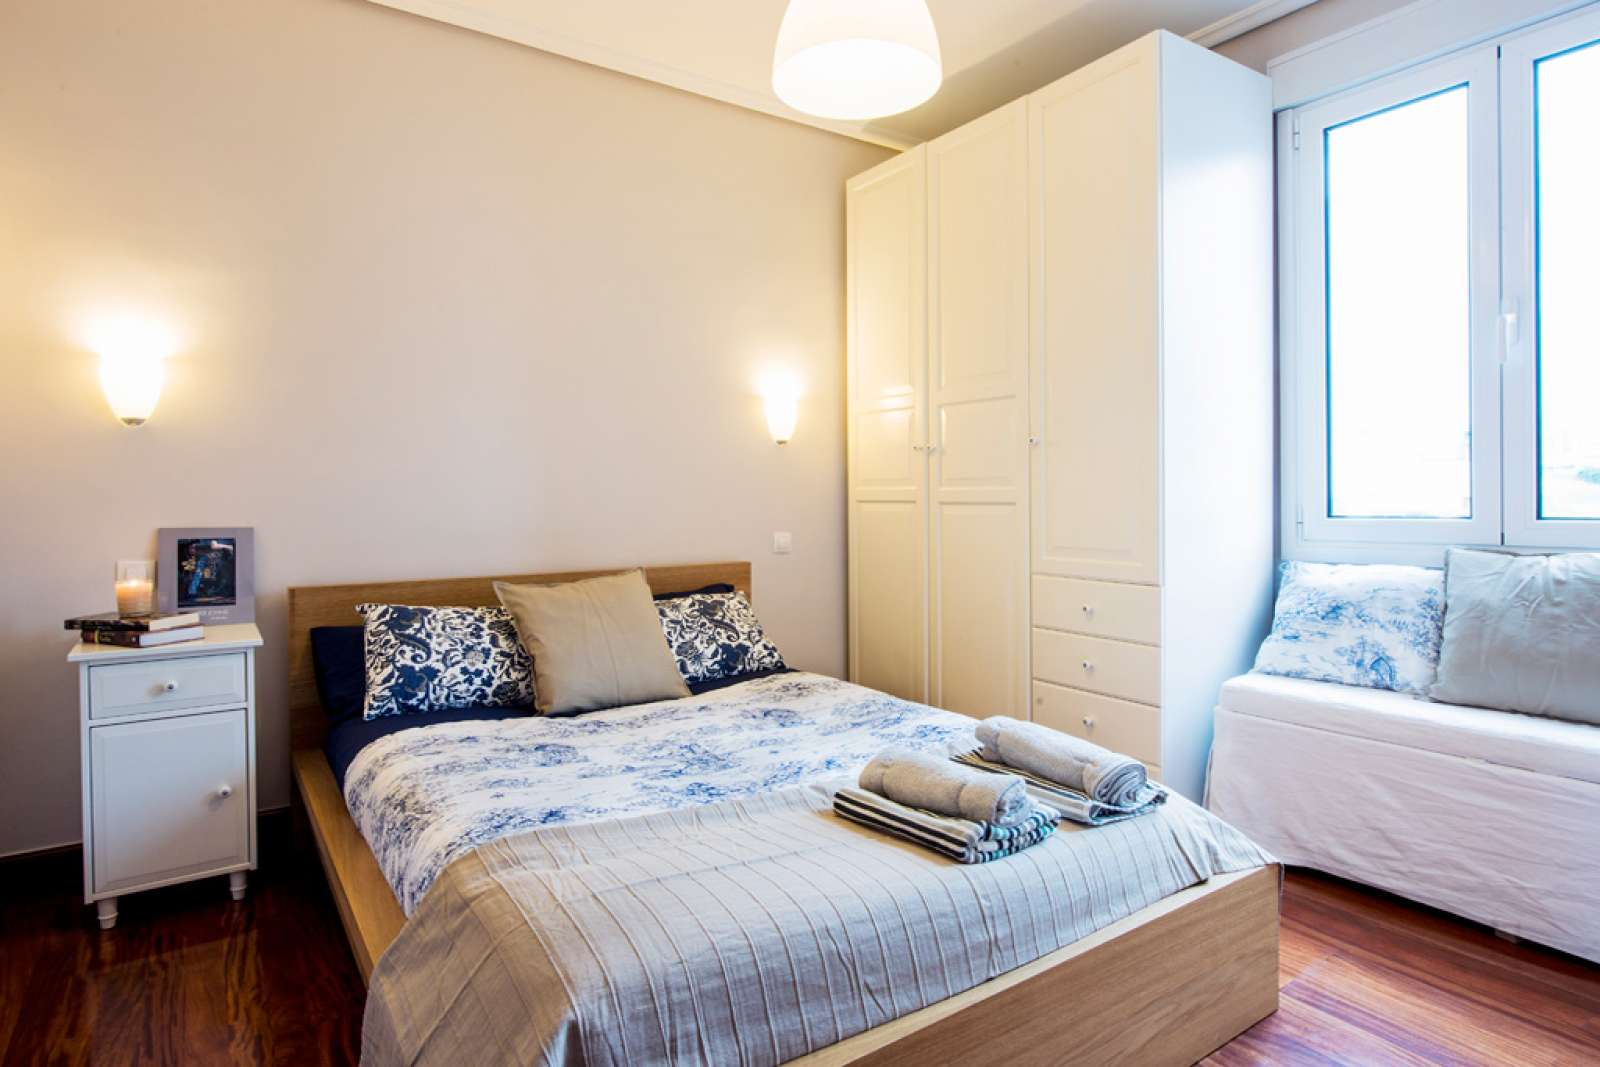 Living Room And Bedroom Double Bed In Rooms For Rent In Apartment With Balcony In Bolueta